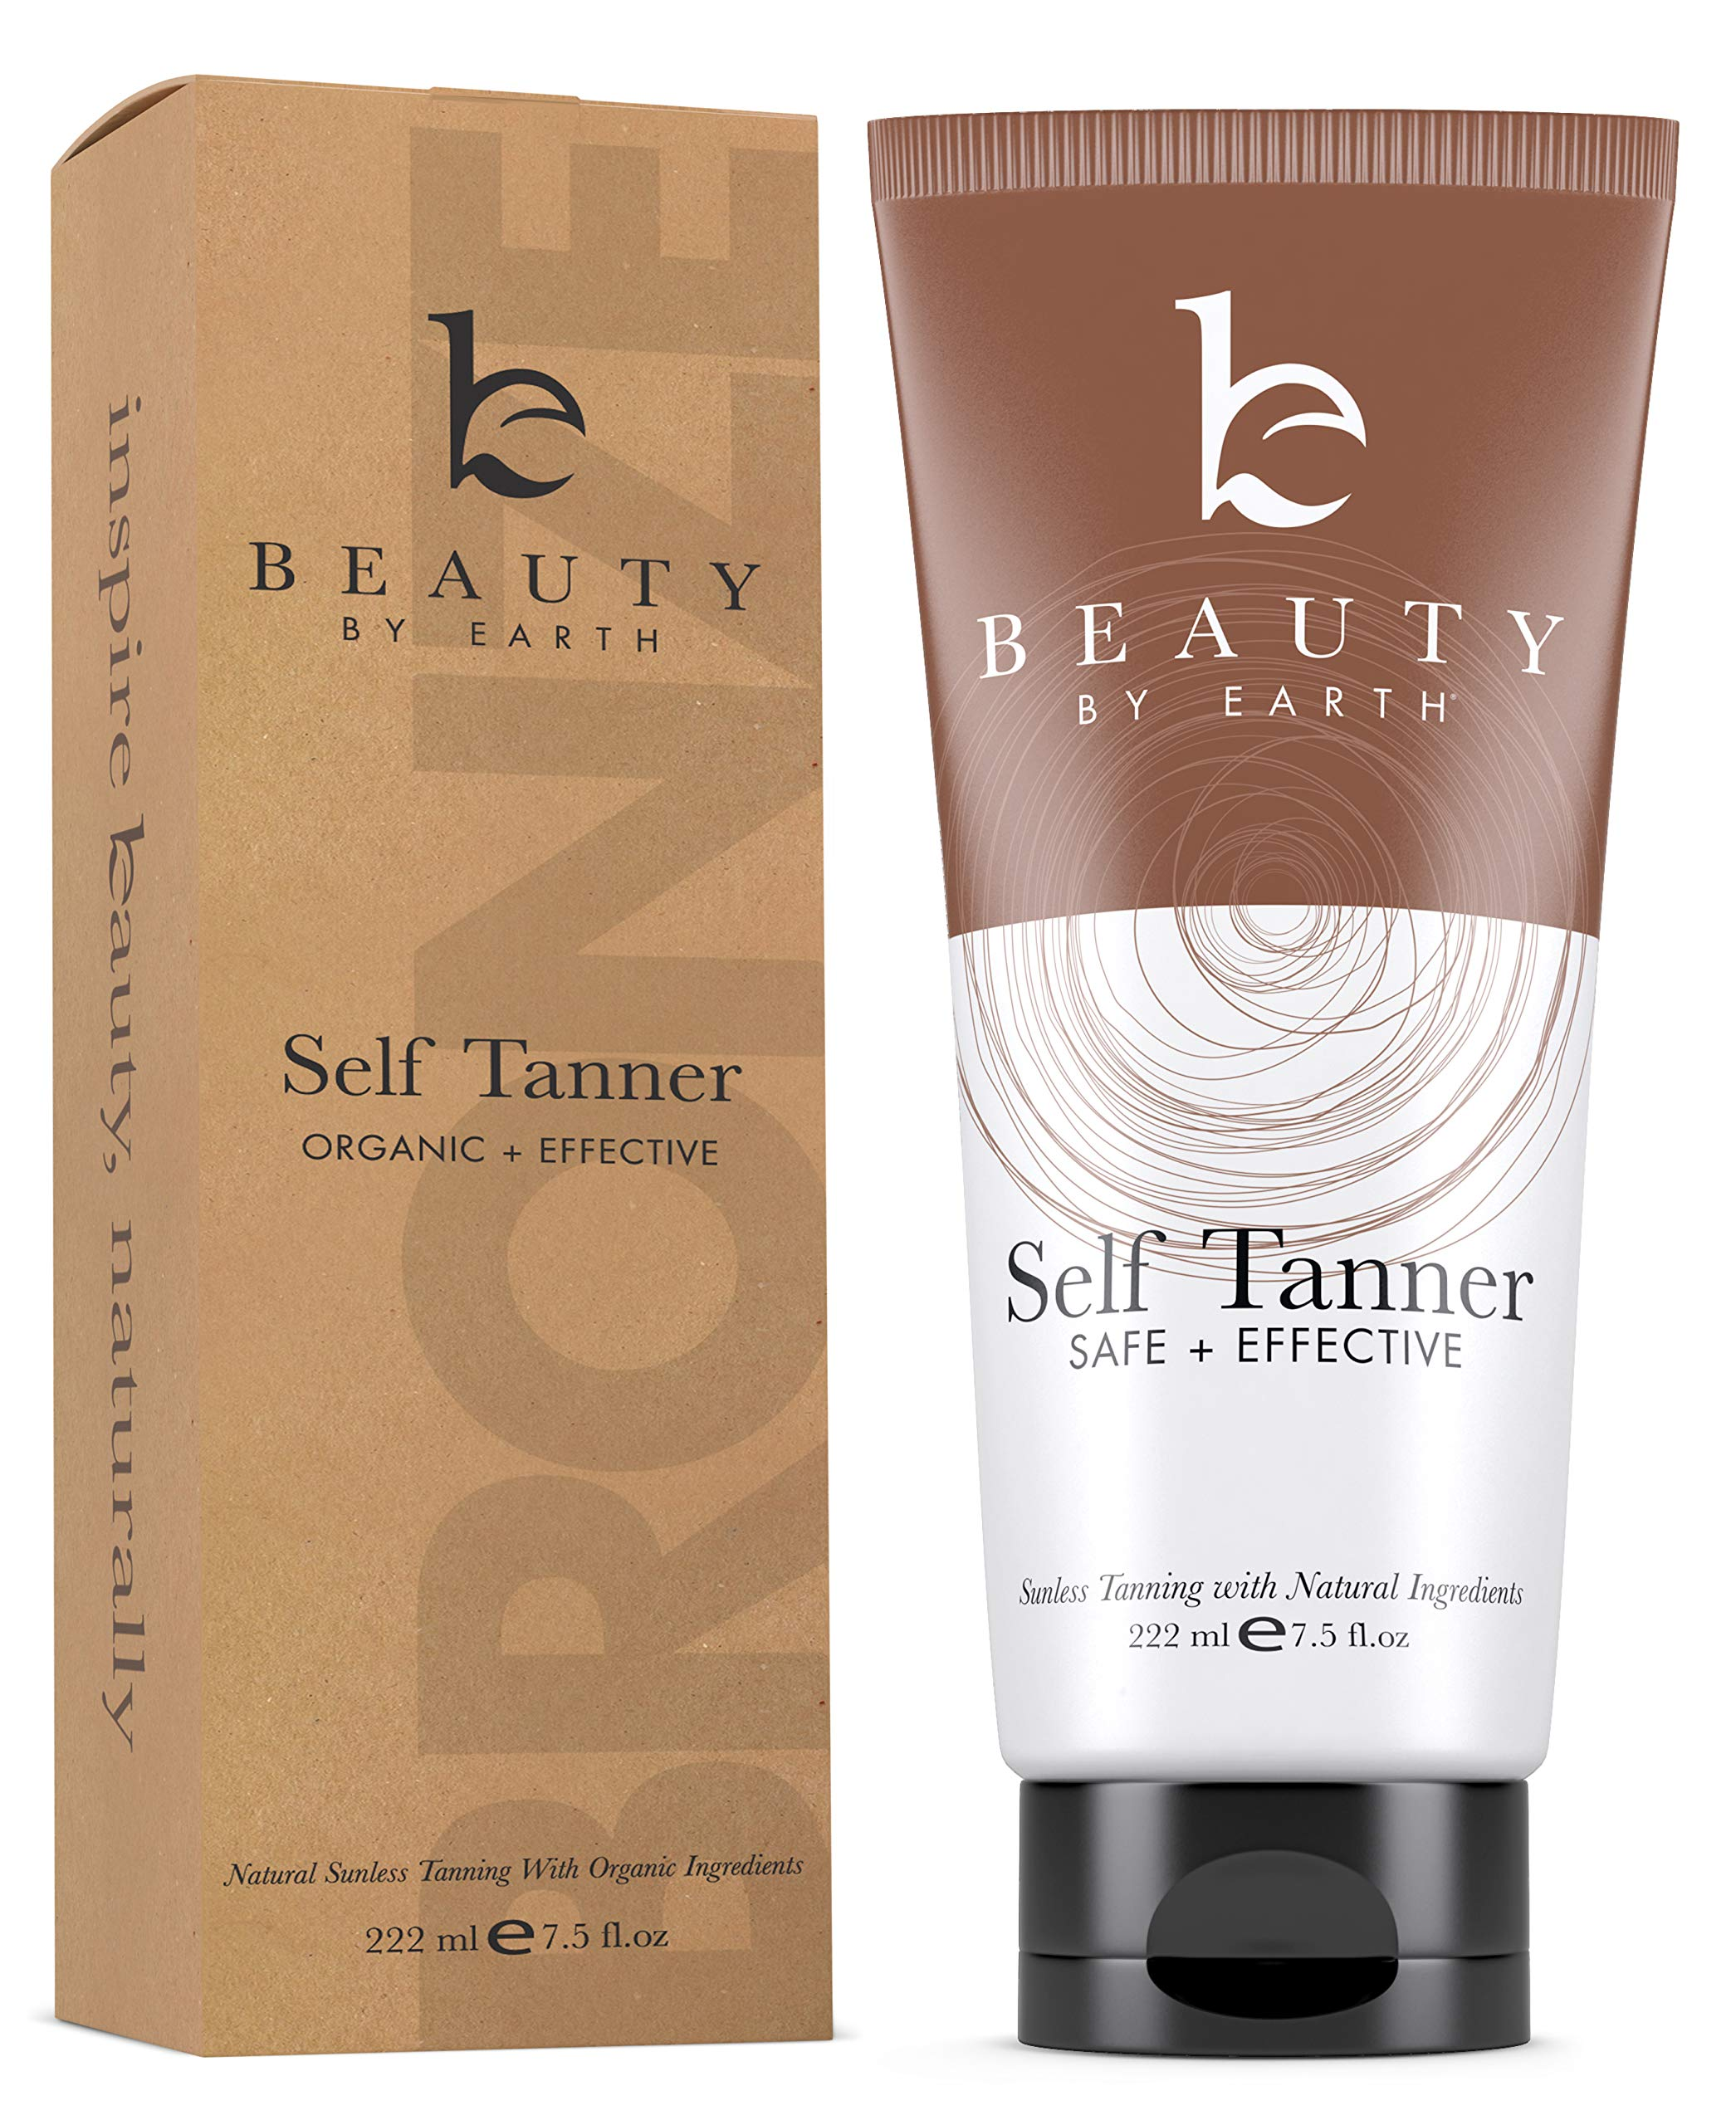 Self Tanner with Organic & Natural Ingredients, Tanning Lotion, Sunless Tanning Lotion for Flawless Darker Bronzer Skin, Self Tanning Lotion - Self Tanners Best Sellers, Fake Tan by Beauty by Earth